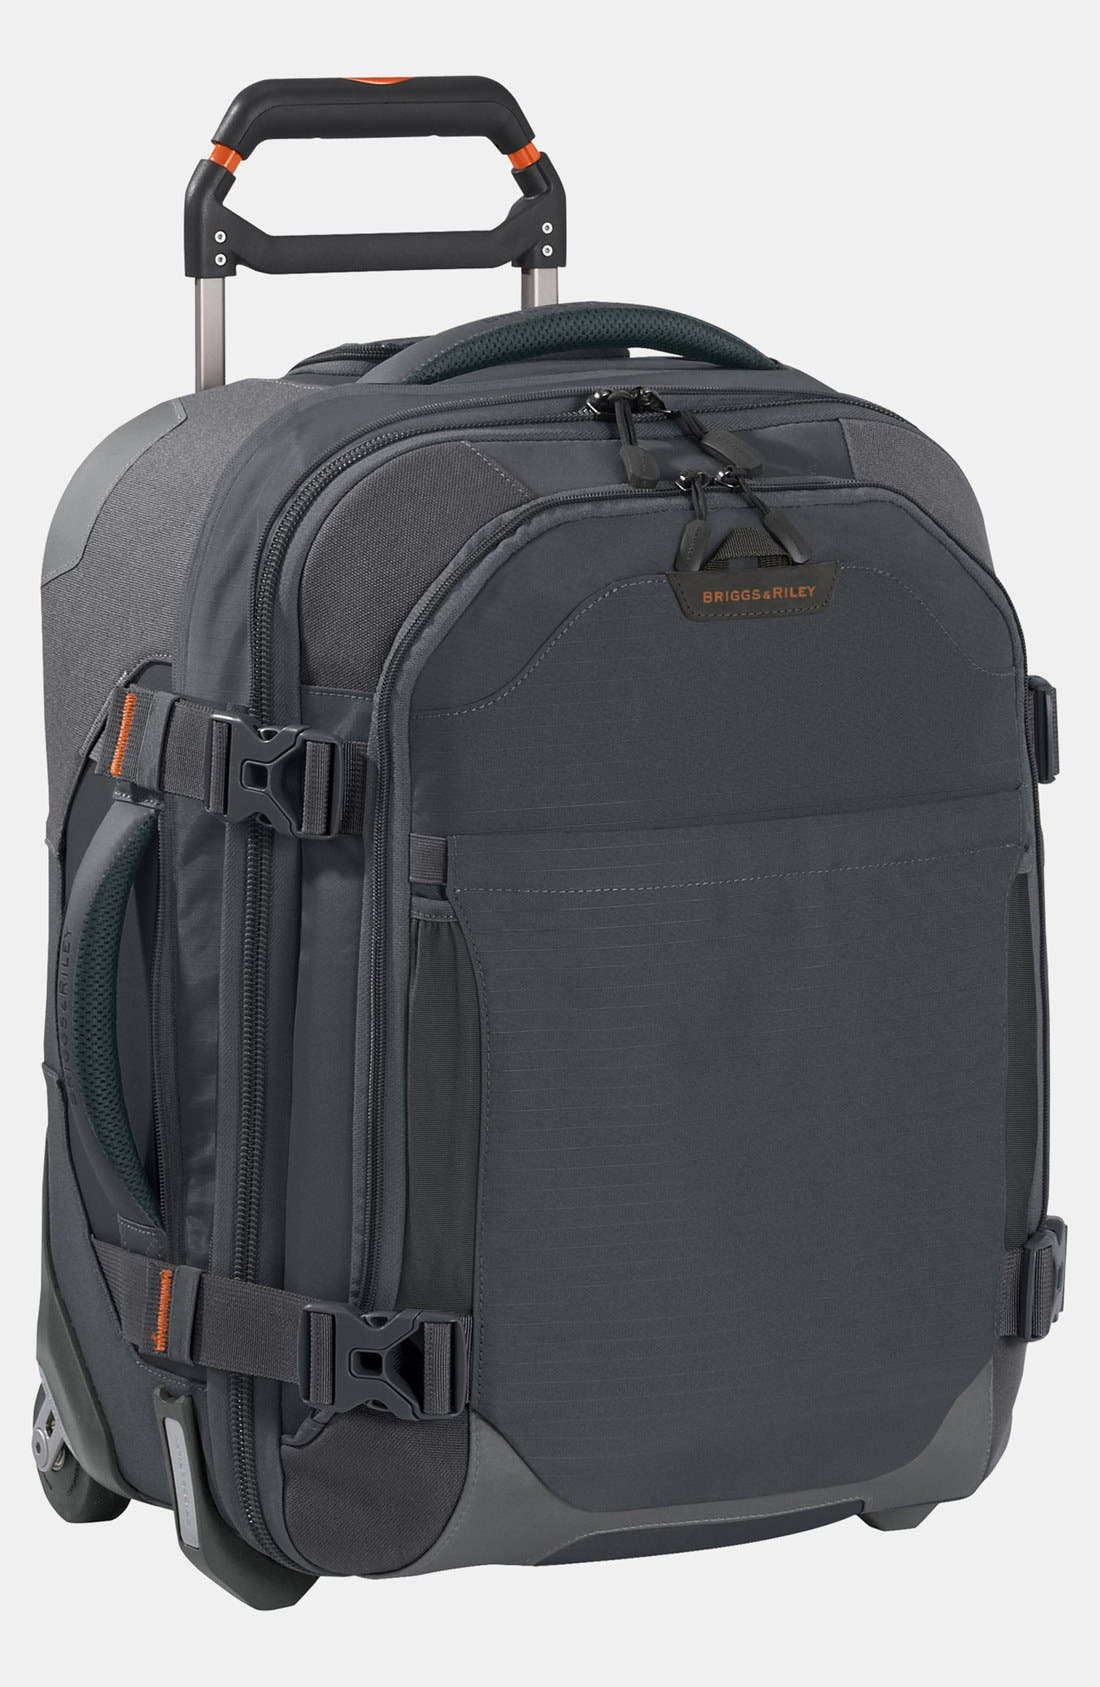 Alternate Image 1 Selected - Briggs & Riley 'Explore' Wide Body Carry-On